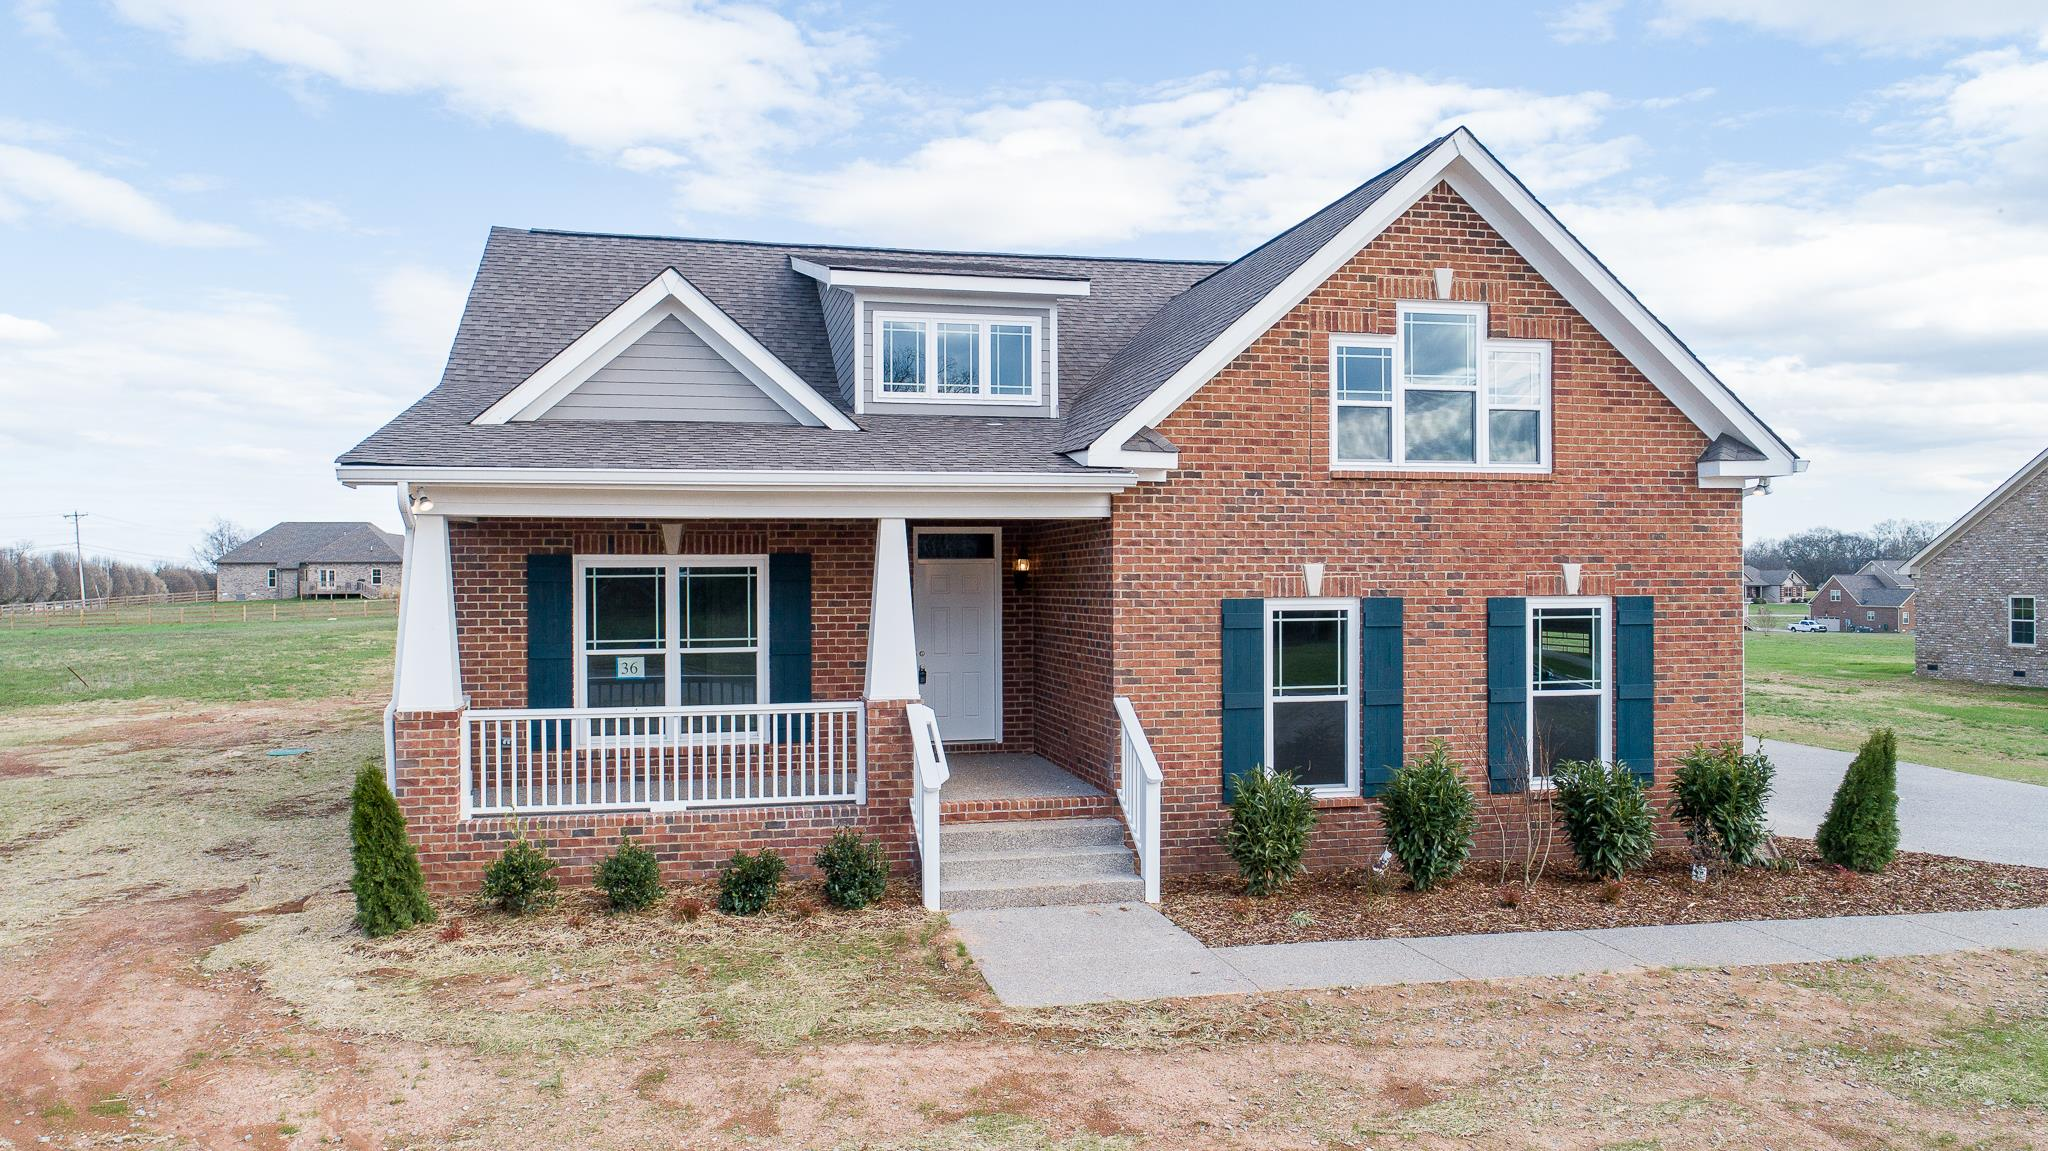 6047 Spade Dr Lot 211, Spring Hill, Tennessee